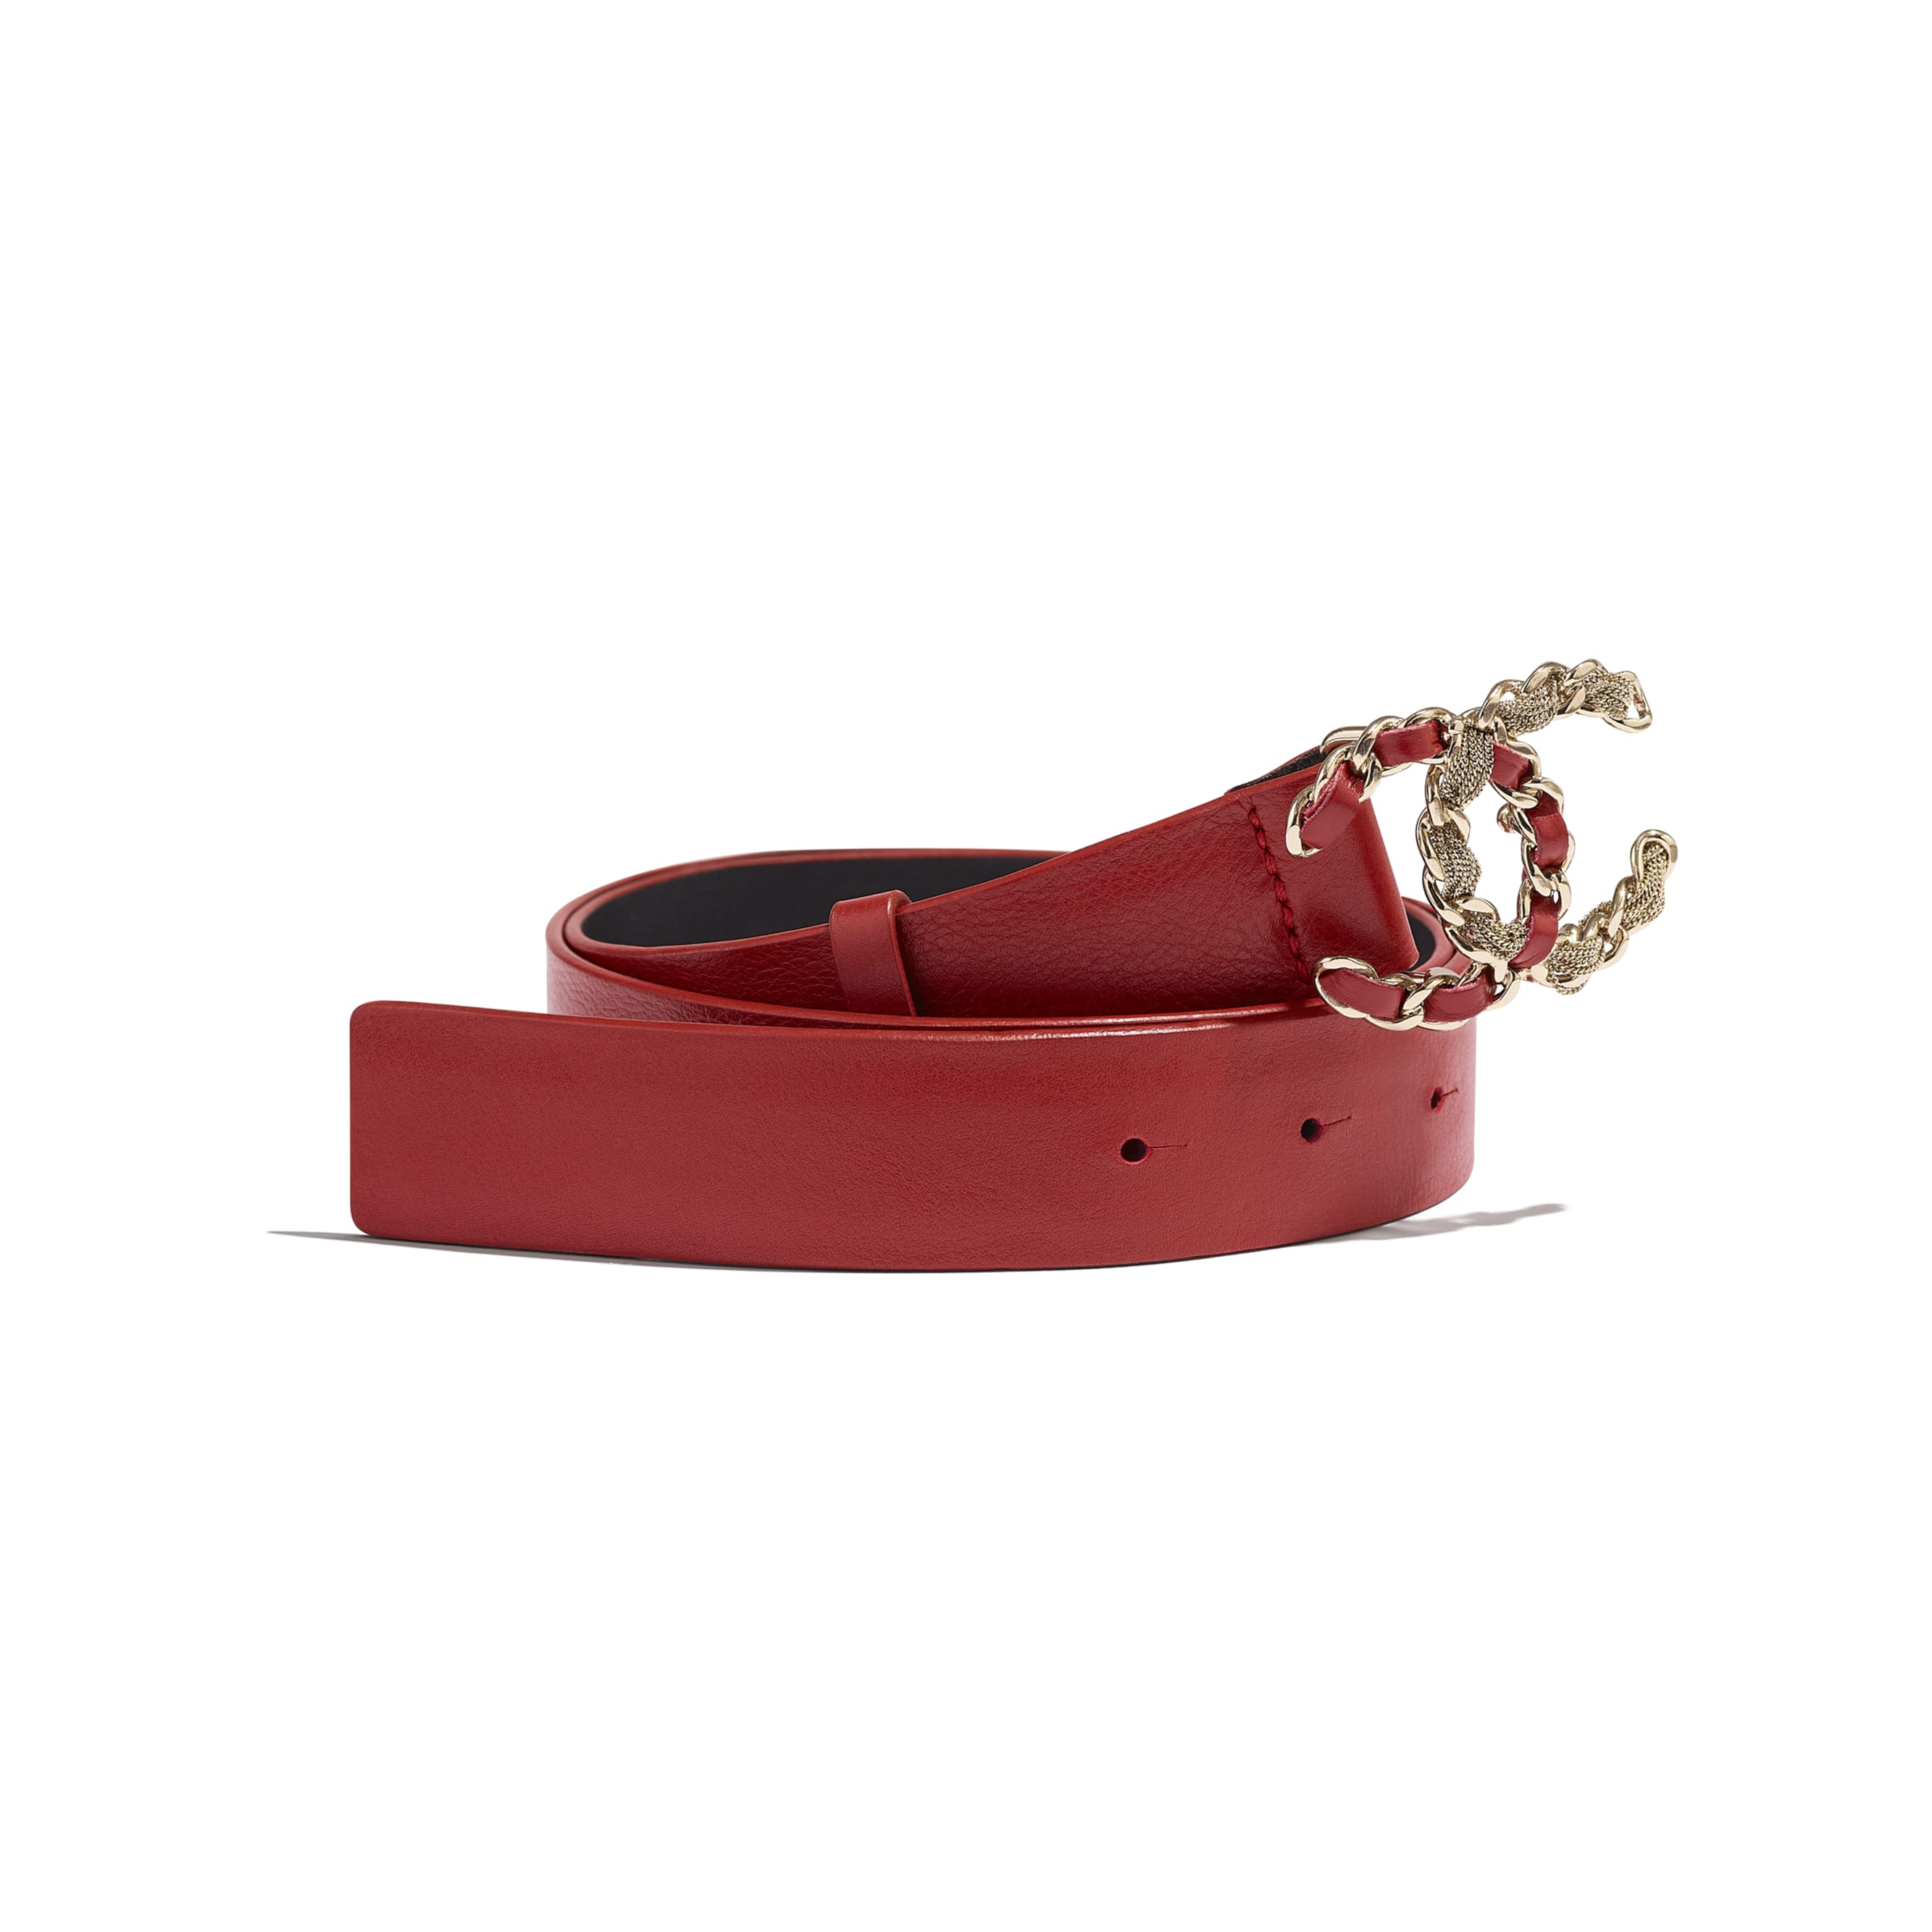 Belt - Red - Calfskin & Gold-Tone Metal - CHANEL - Default view - see standard sized version